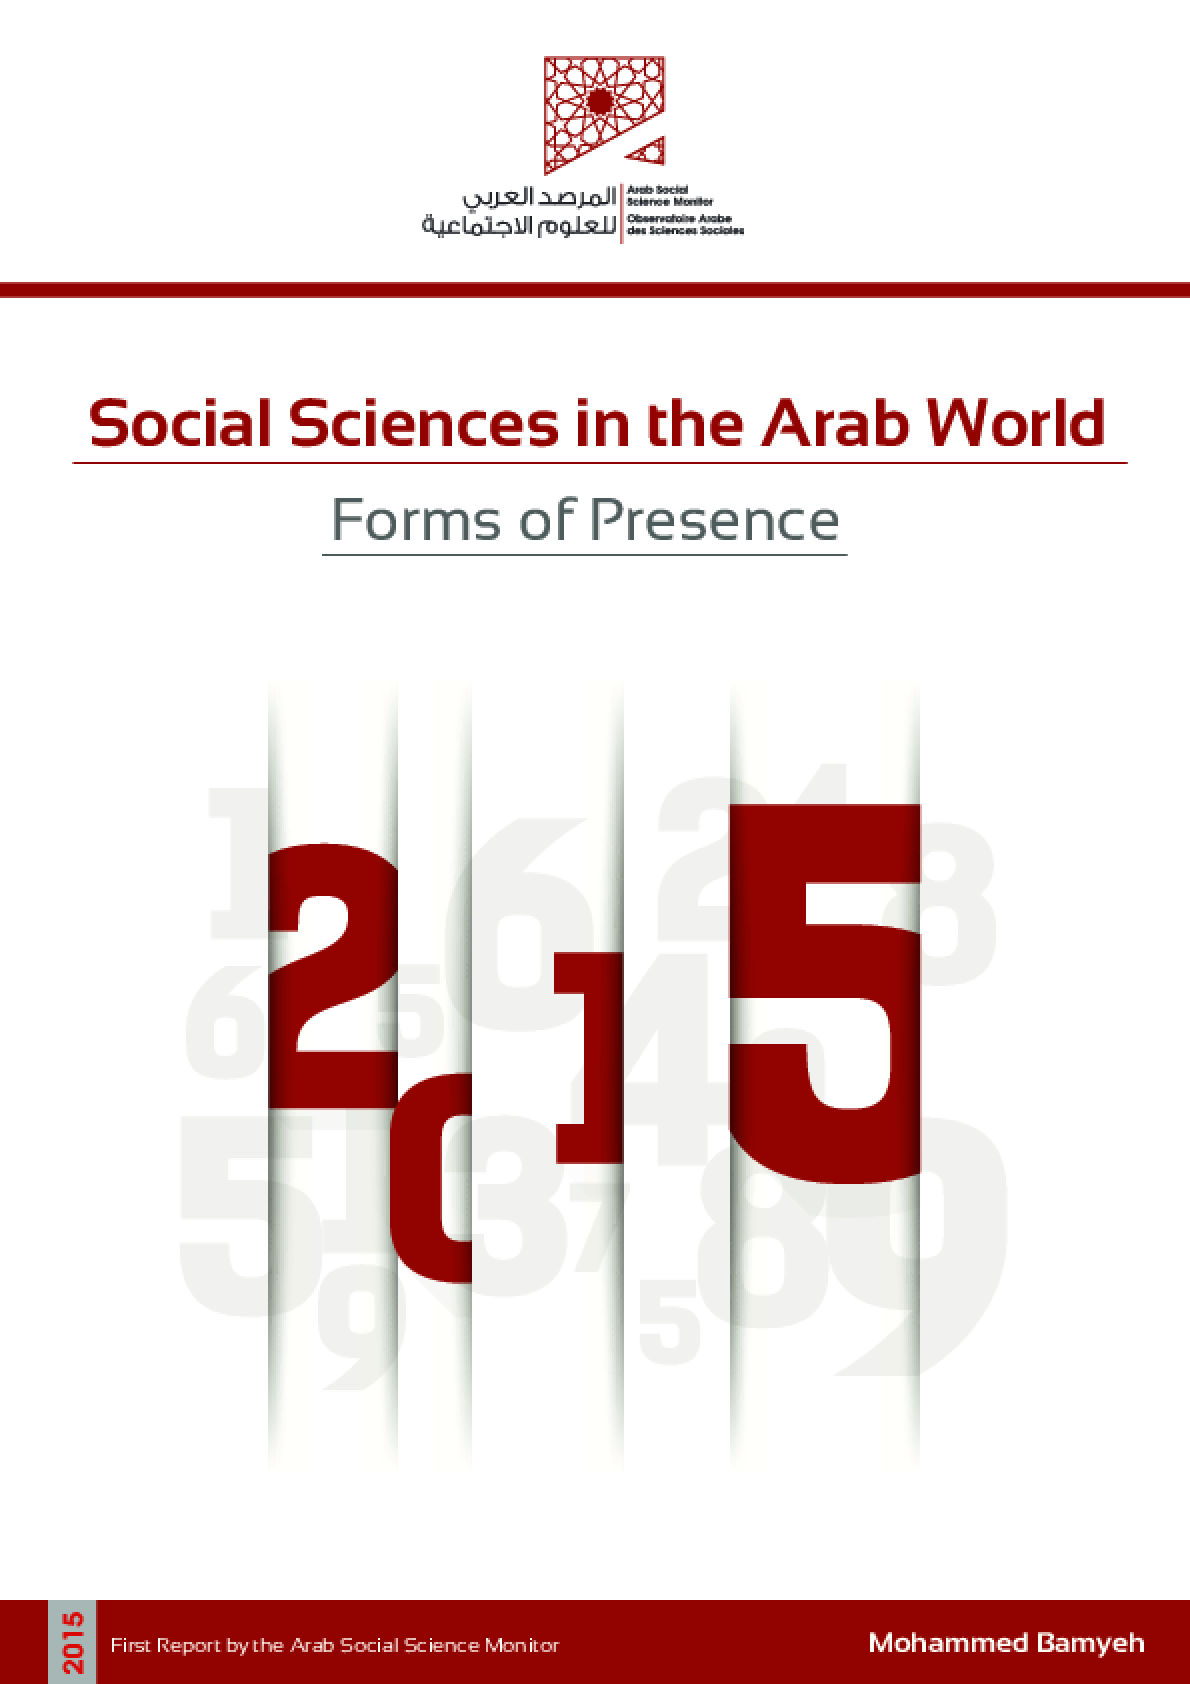 Social Sciences in the Arab World: Forms of Presence